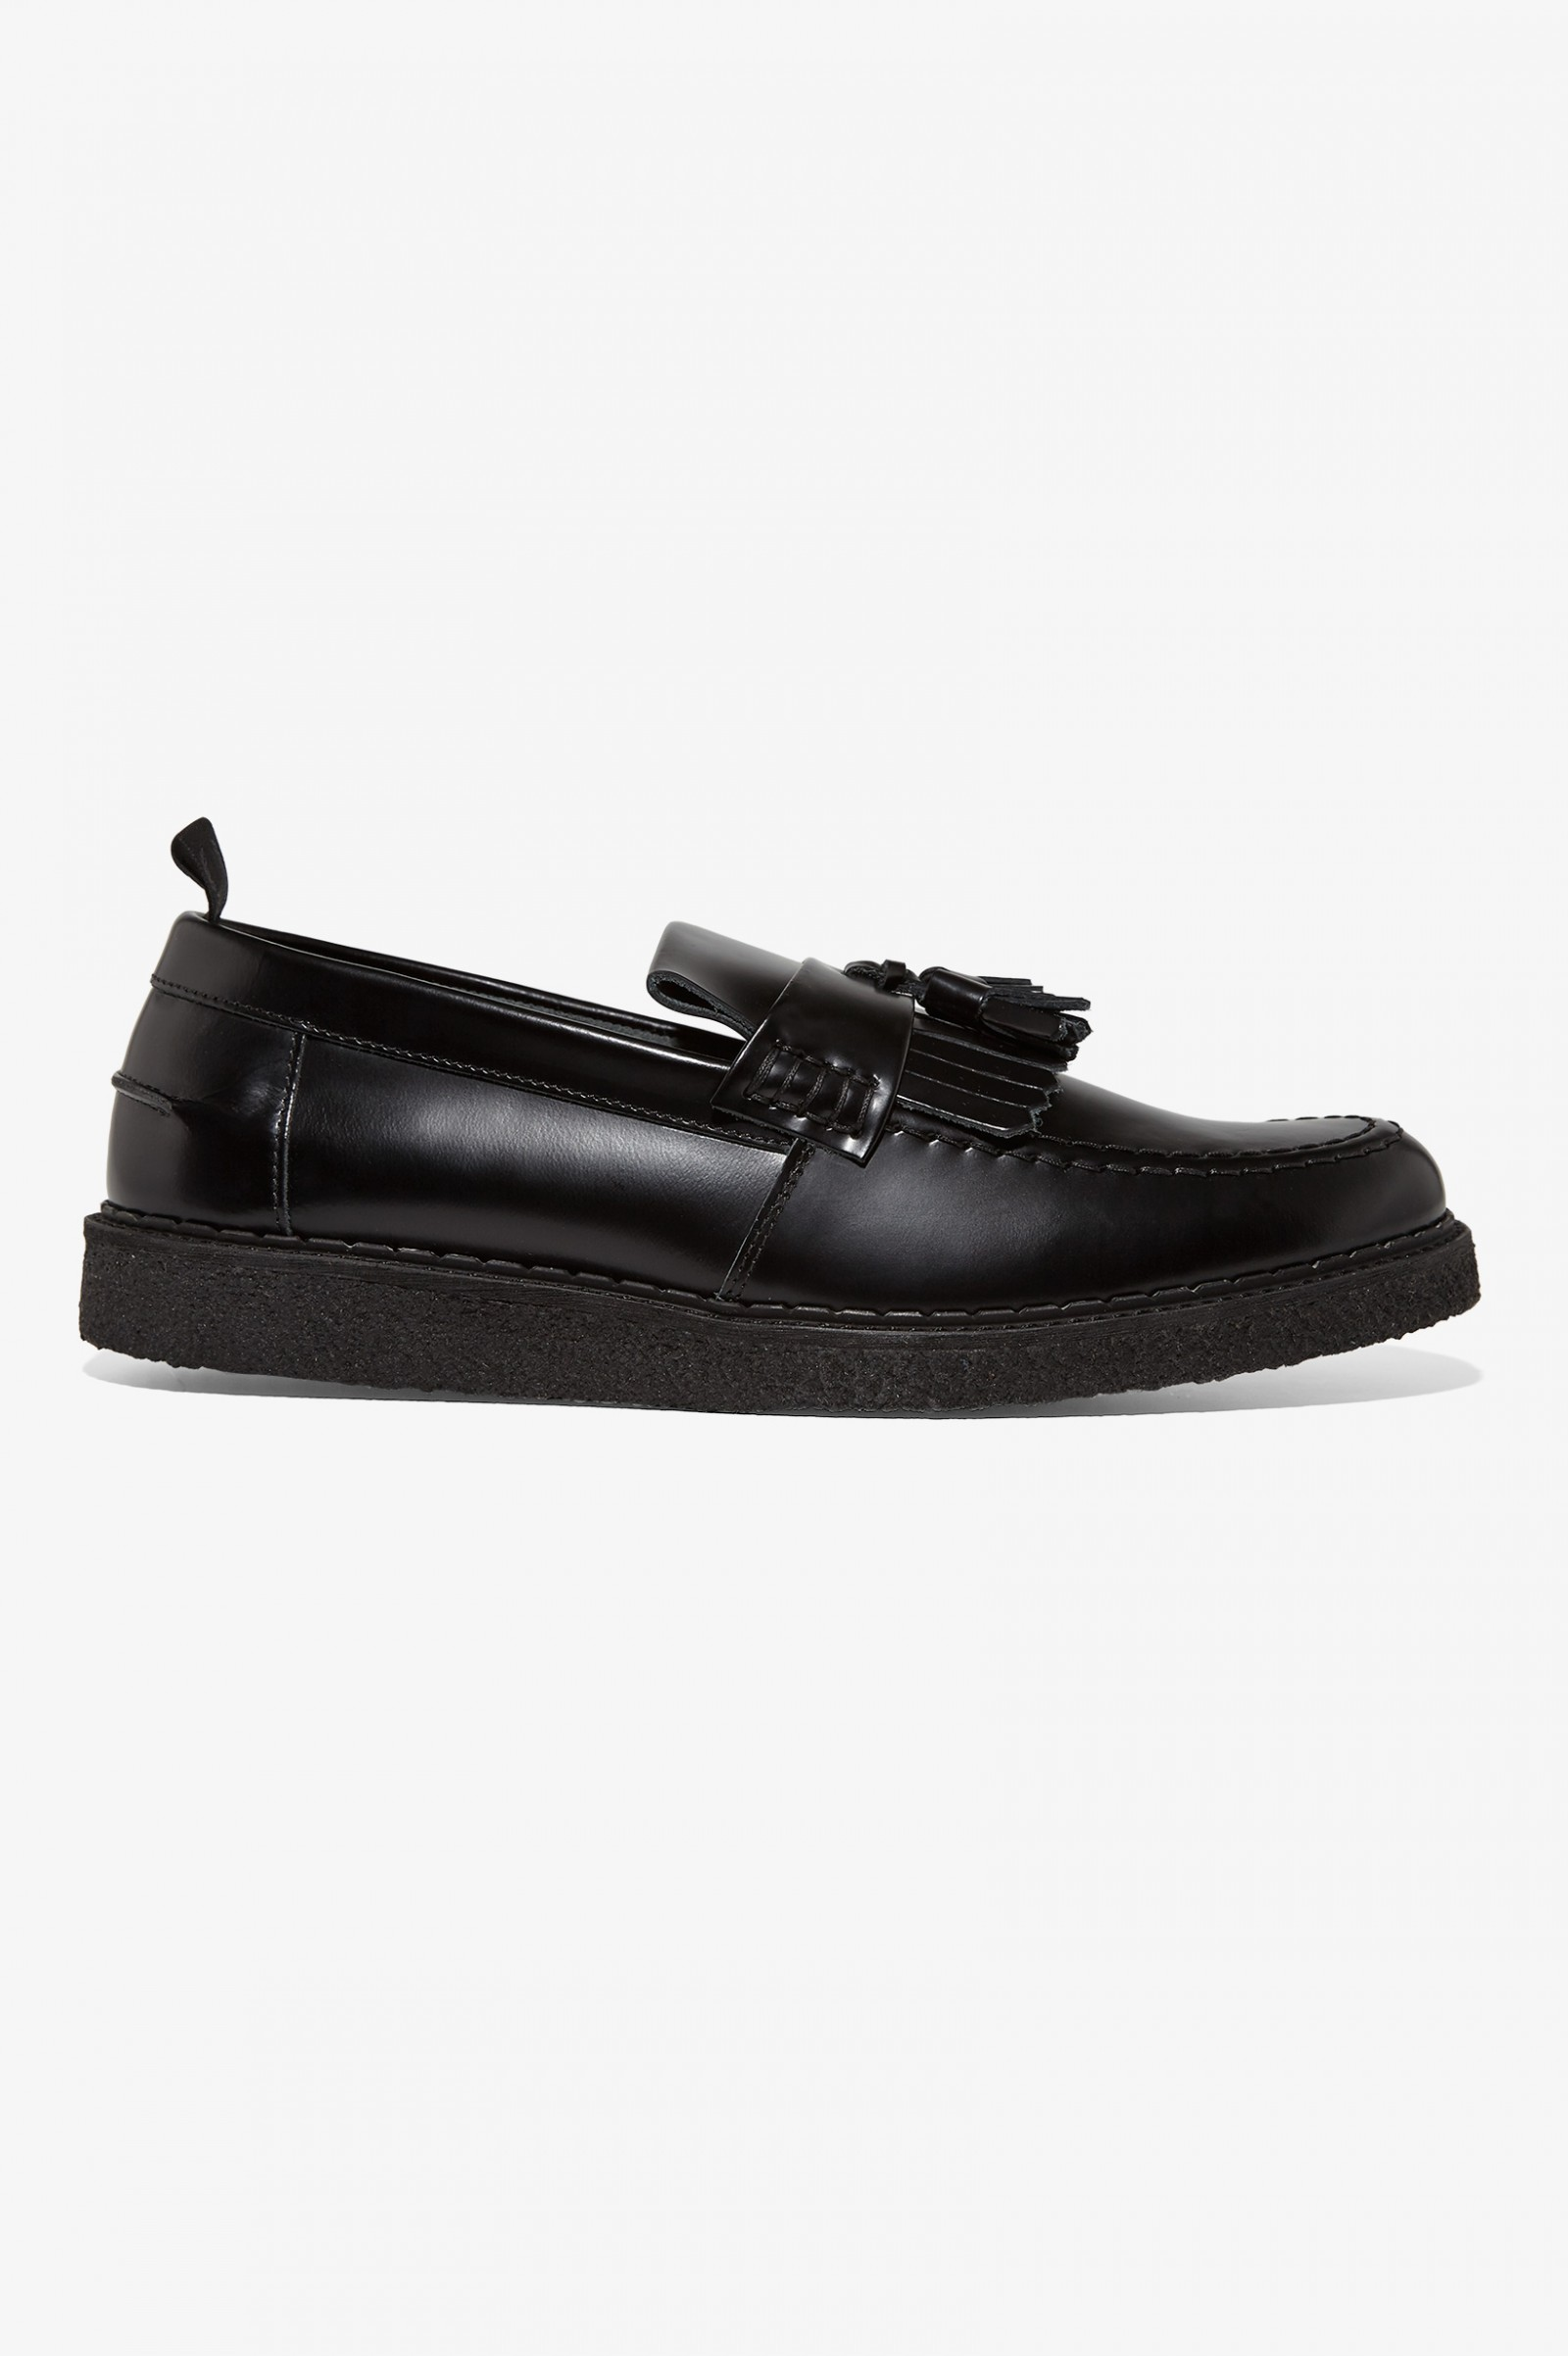 Fred Perry X George Cox Tassel Loafer Black Mens Footwear D Island Shoes Slip On Mocasine Casual Loafers 1